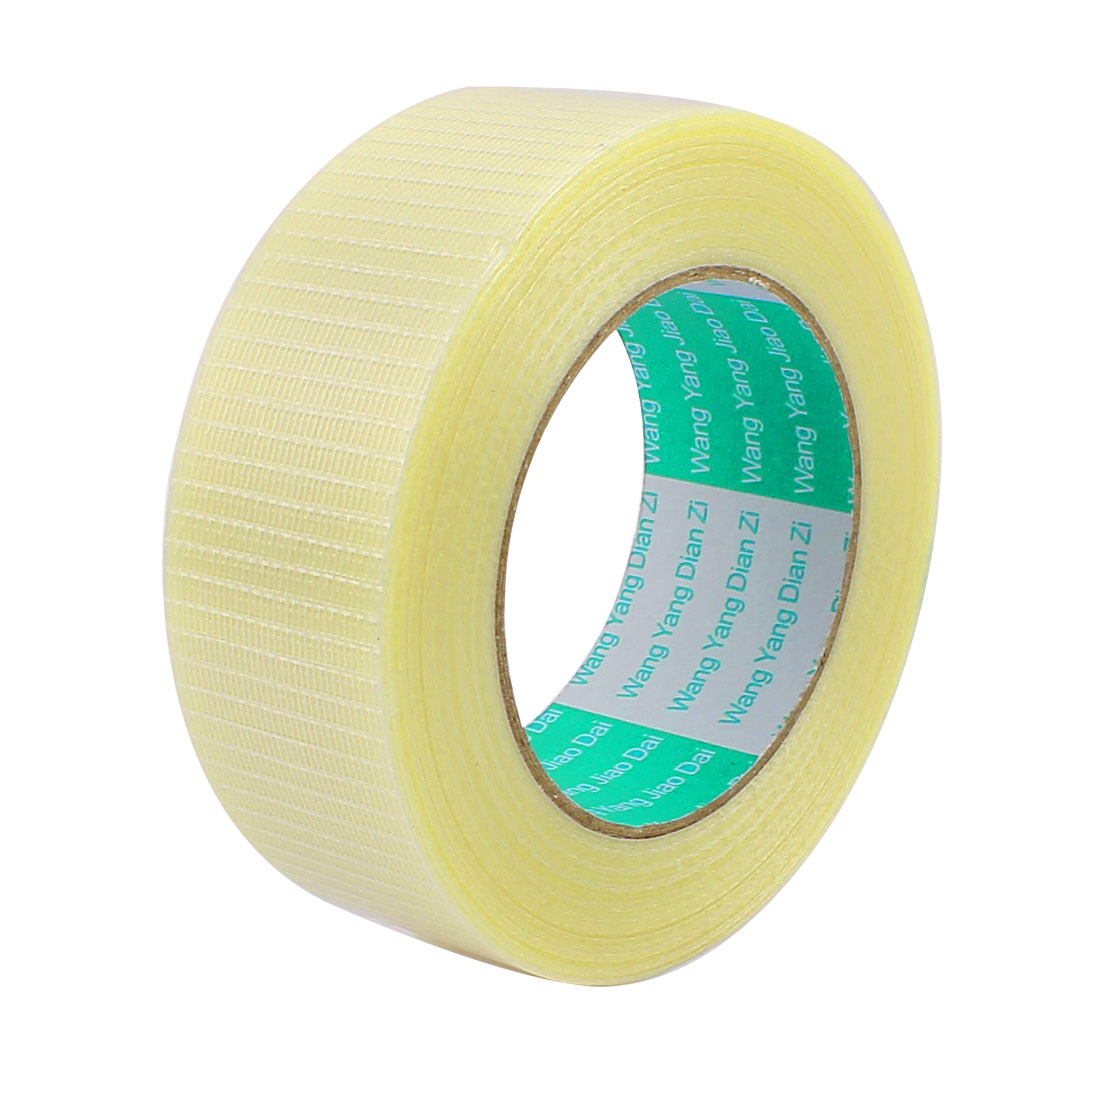 40mm Height 50M Length Long Adhesive Insulating Grid Glass Fiber Tape Roll